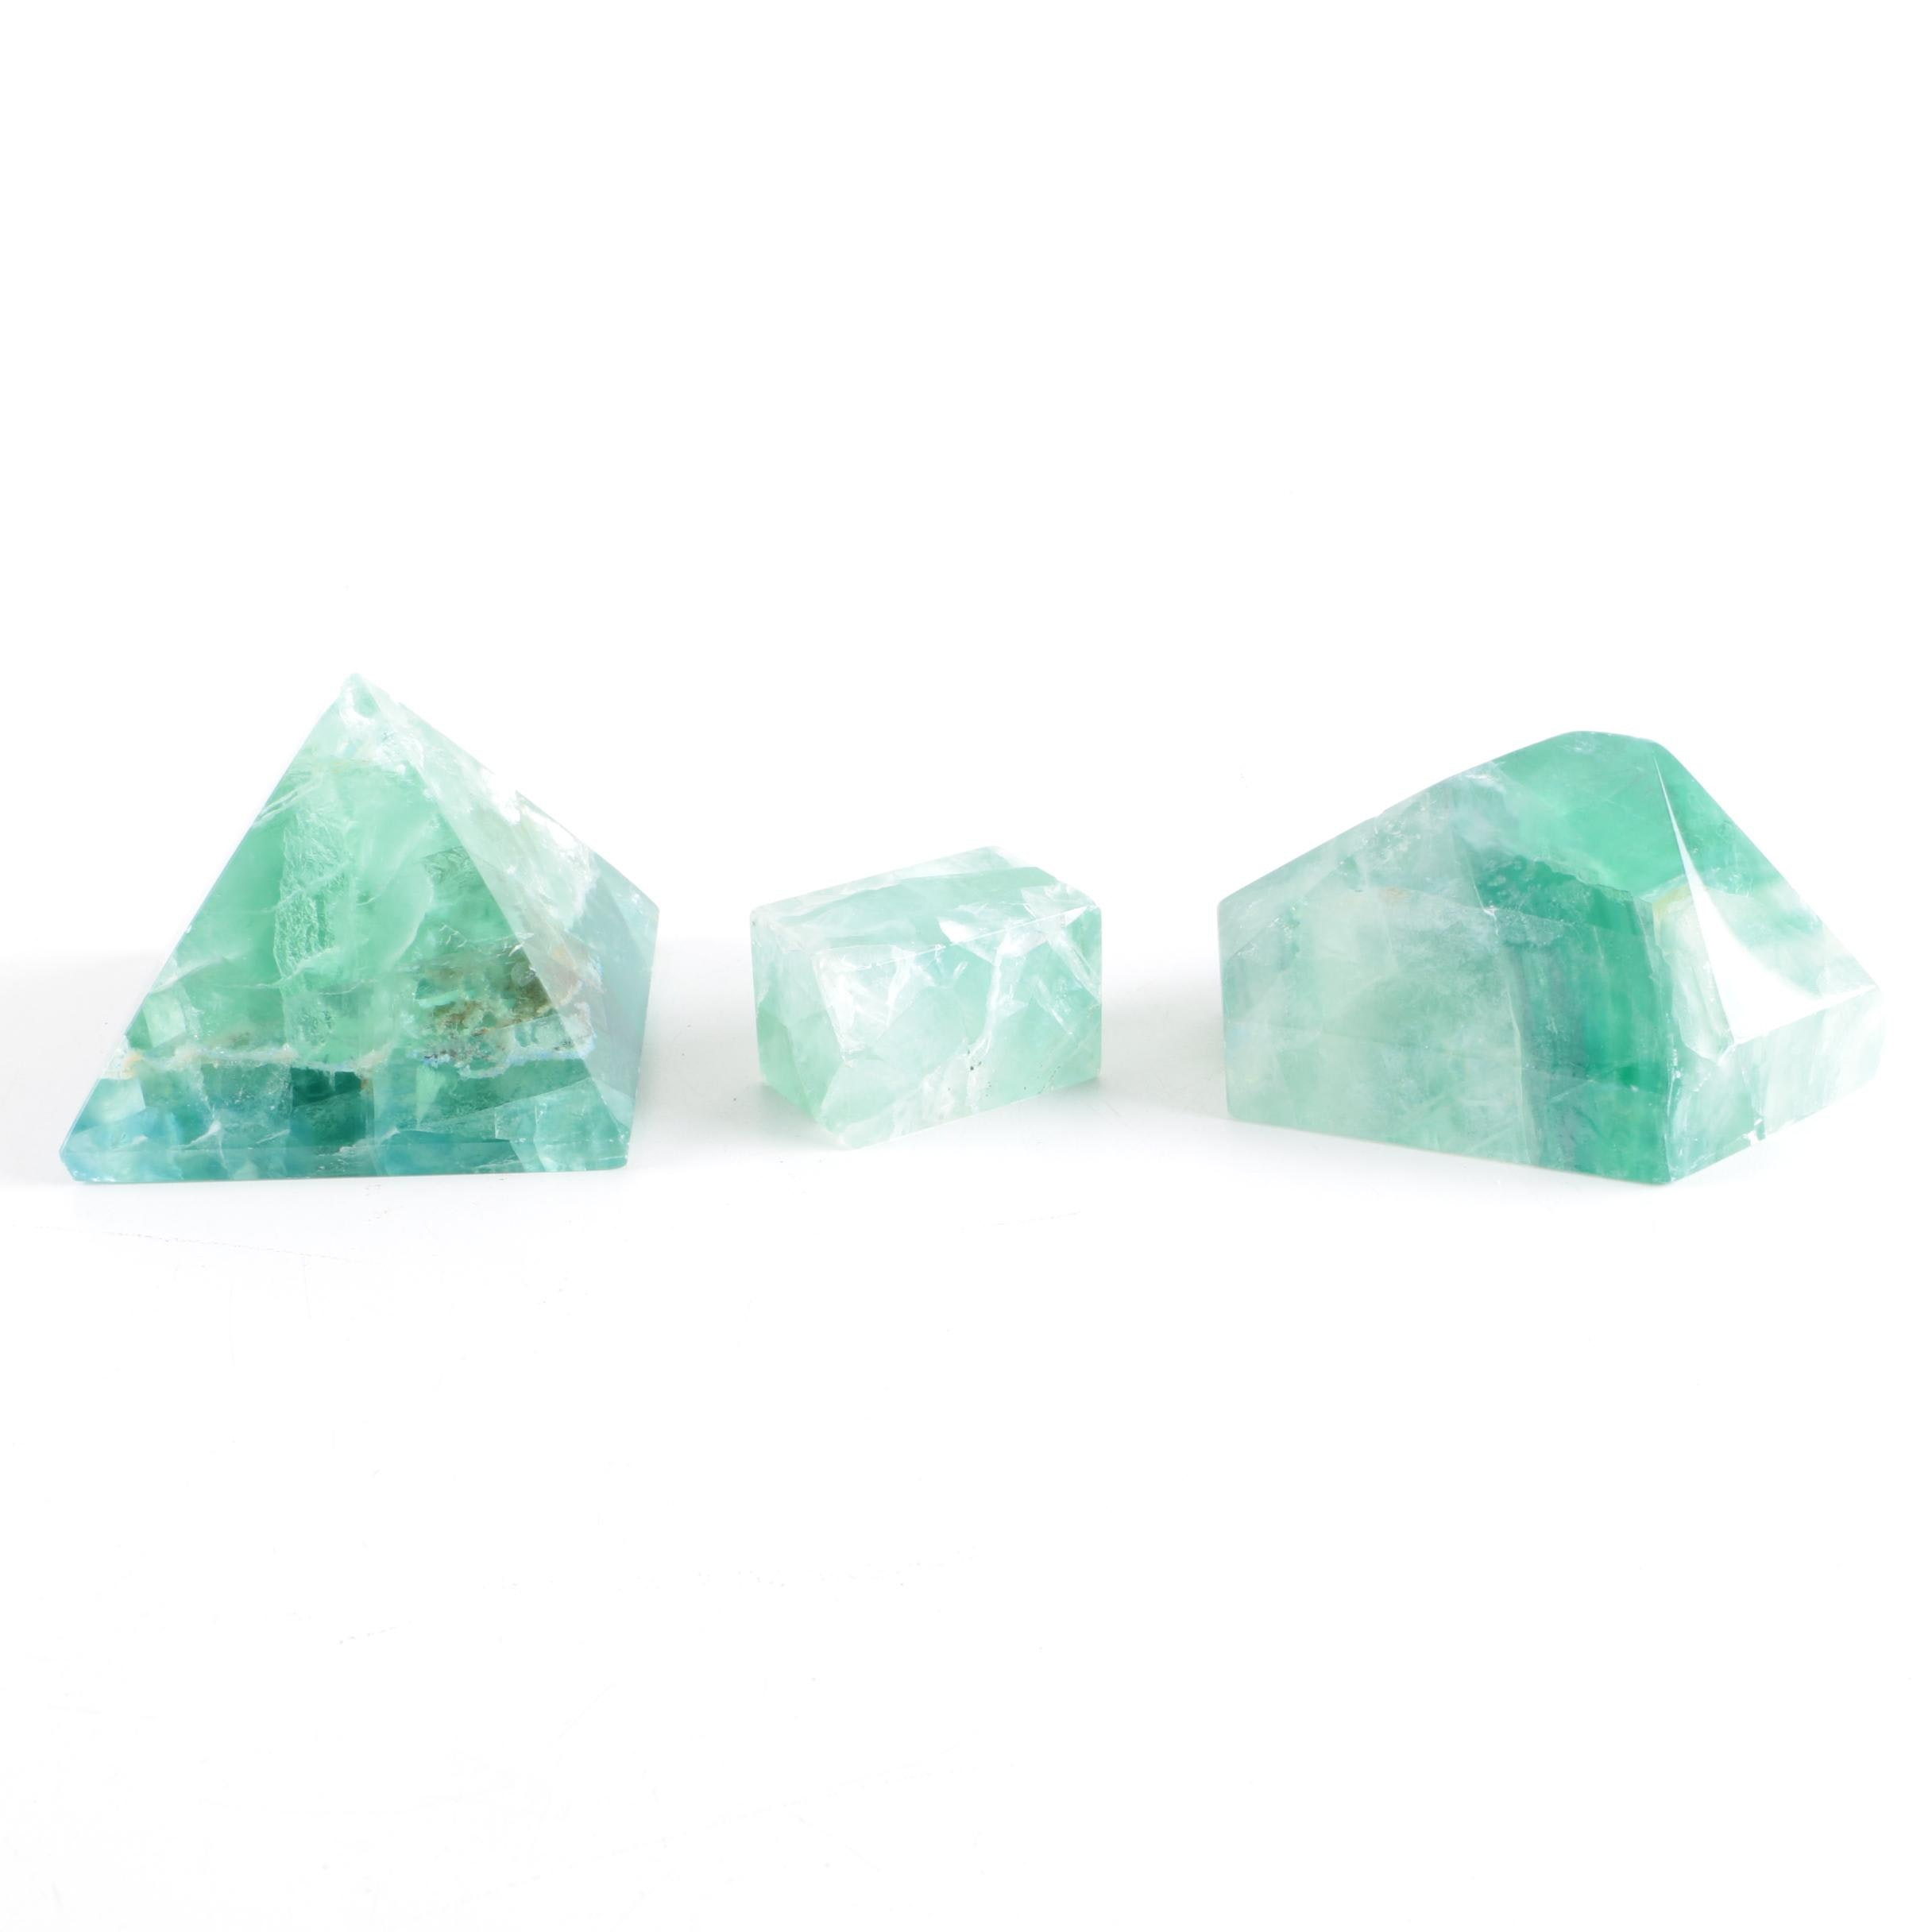 Faceted Fluorite Specimens